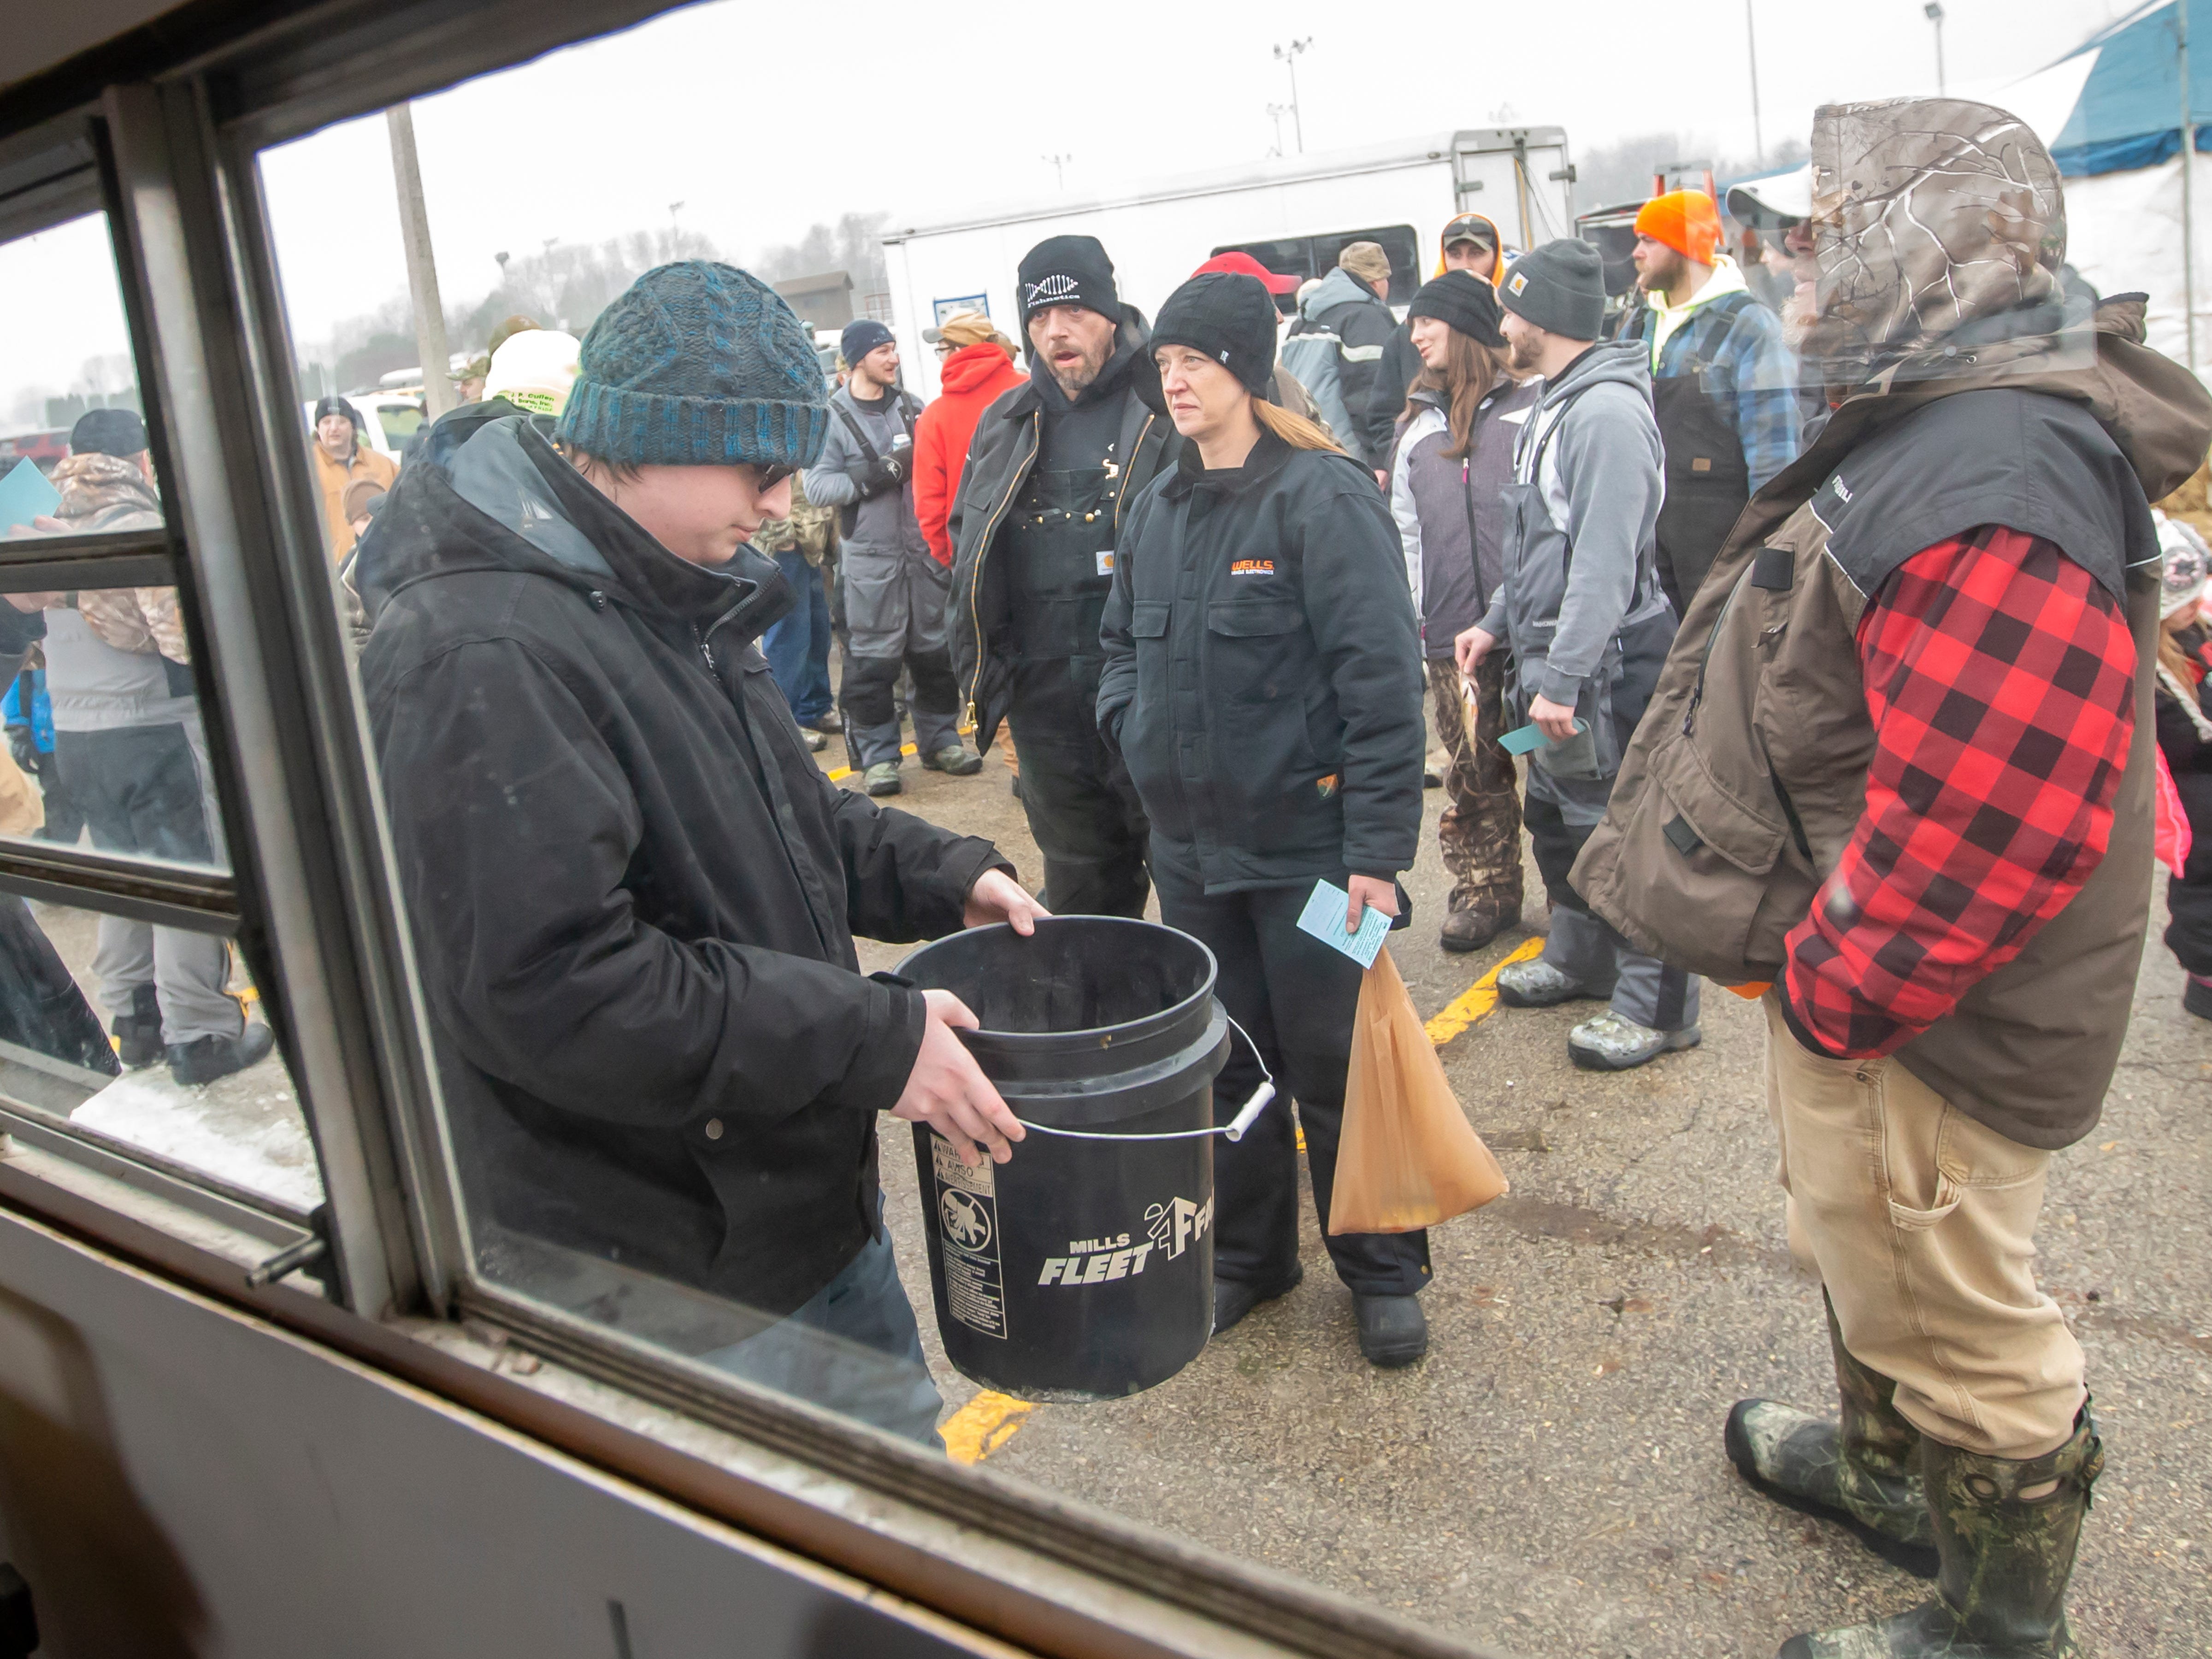 People arrive with their fishing catch to enter it into the contest during the Otter Street Fishing Club Winter Fisheree at Miller's Bay in Menominee Park on Saturday, Feb. 2, 2019.